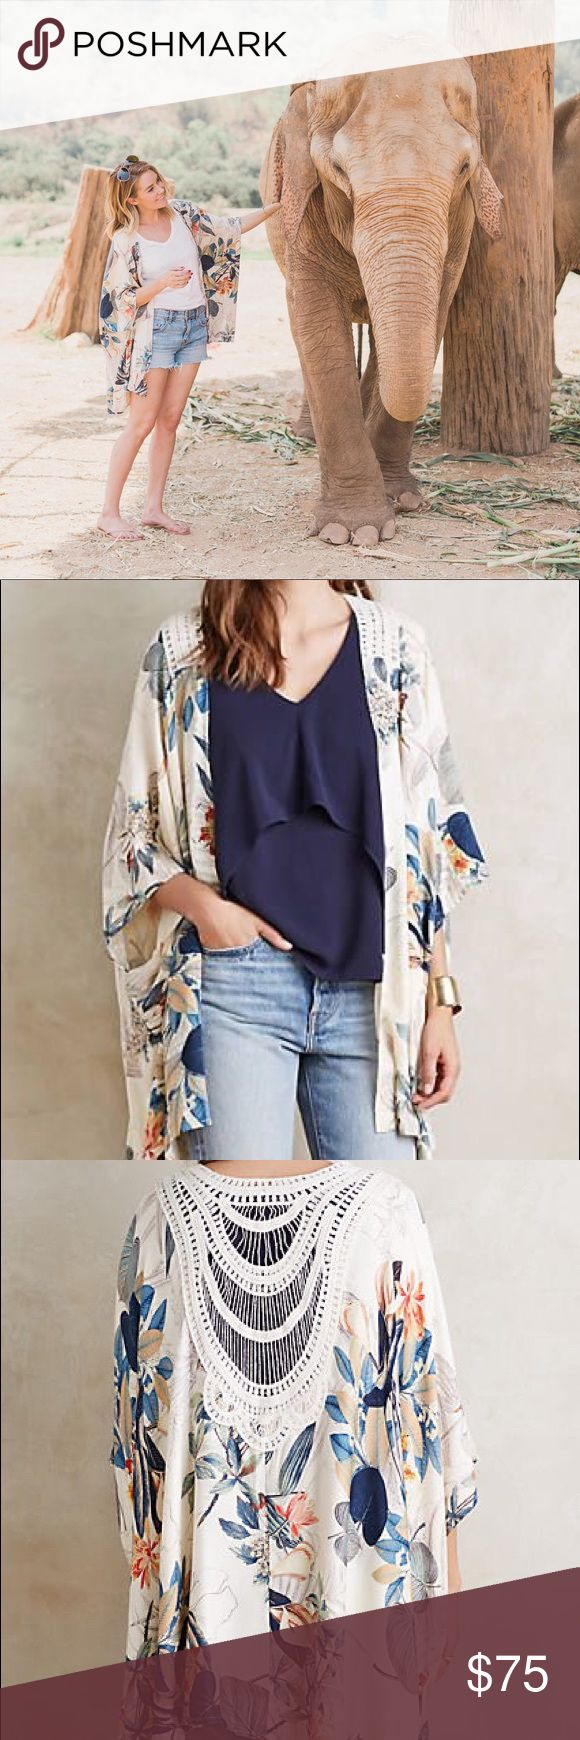 Anthropologie Raya Kimono NWOT. As seen on Lauren Conrad. SOLD OUT. Beautiful floral print cardigan with a crochet back. Anthropologie Sweaters Cardigans